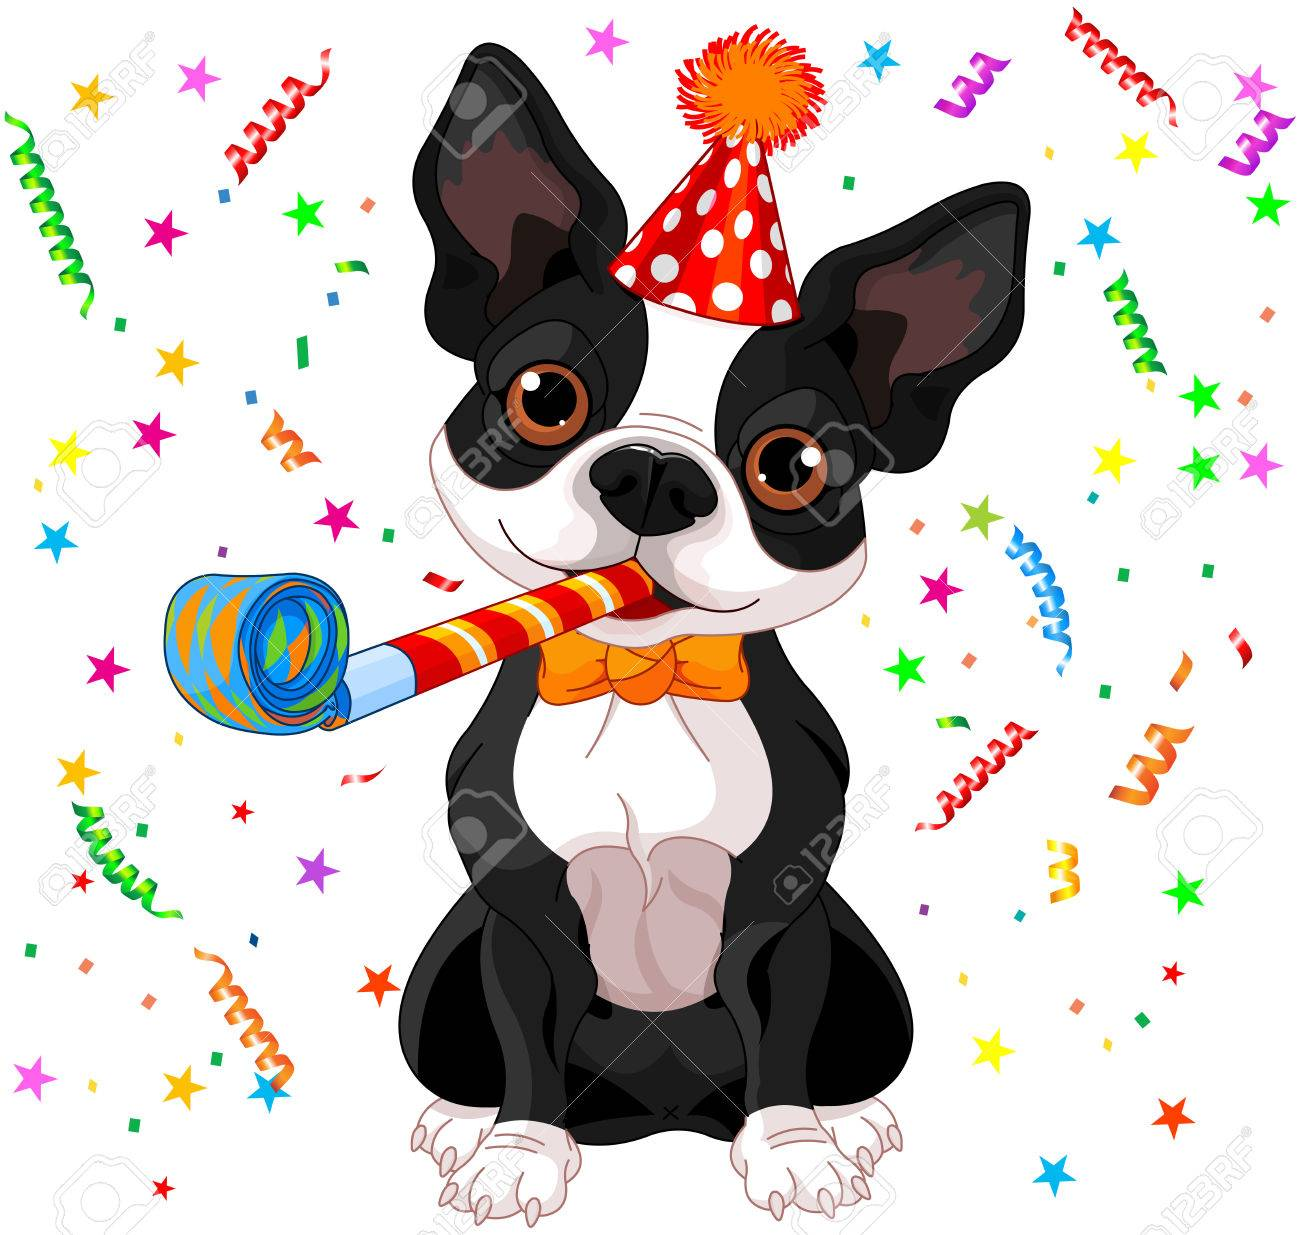 Peur du sèche-cheveux/ventilateur 35588778-illustration-of-cute-boston-terrier-celebrating